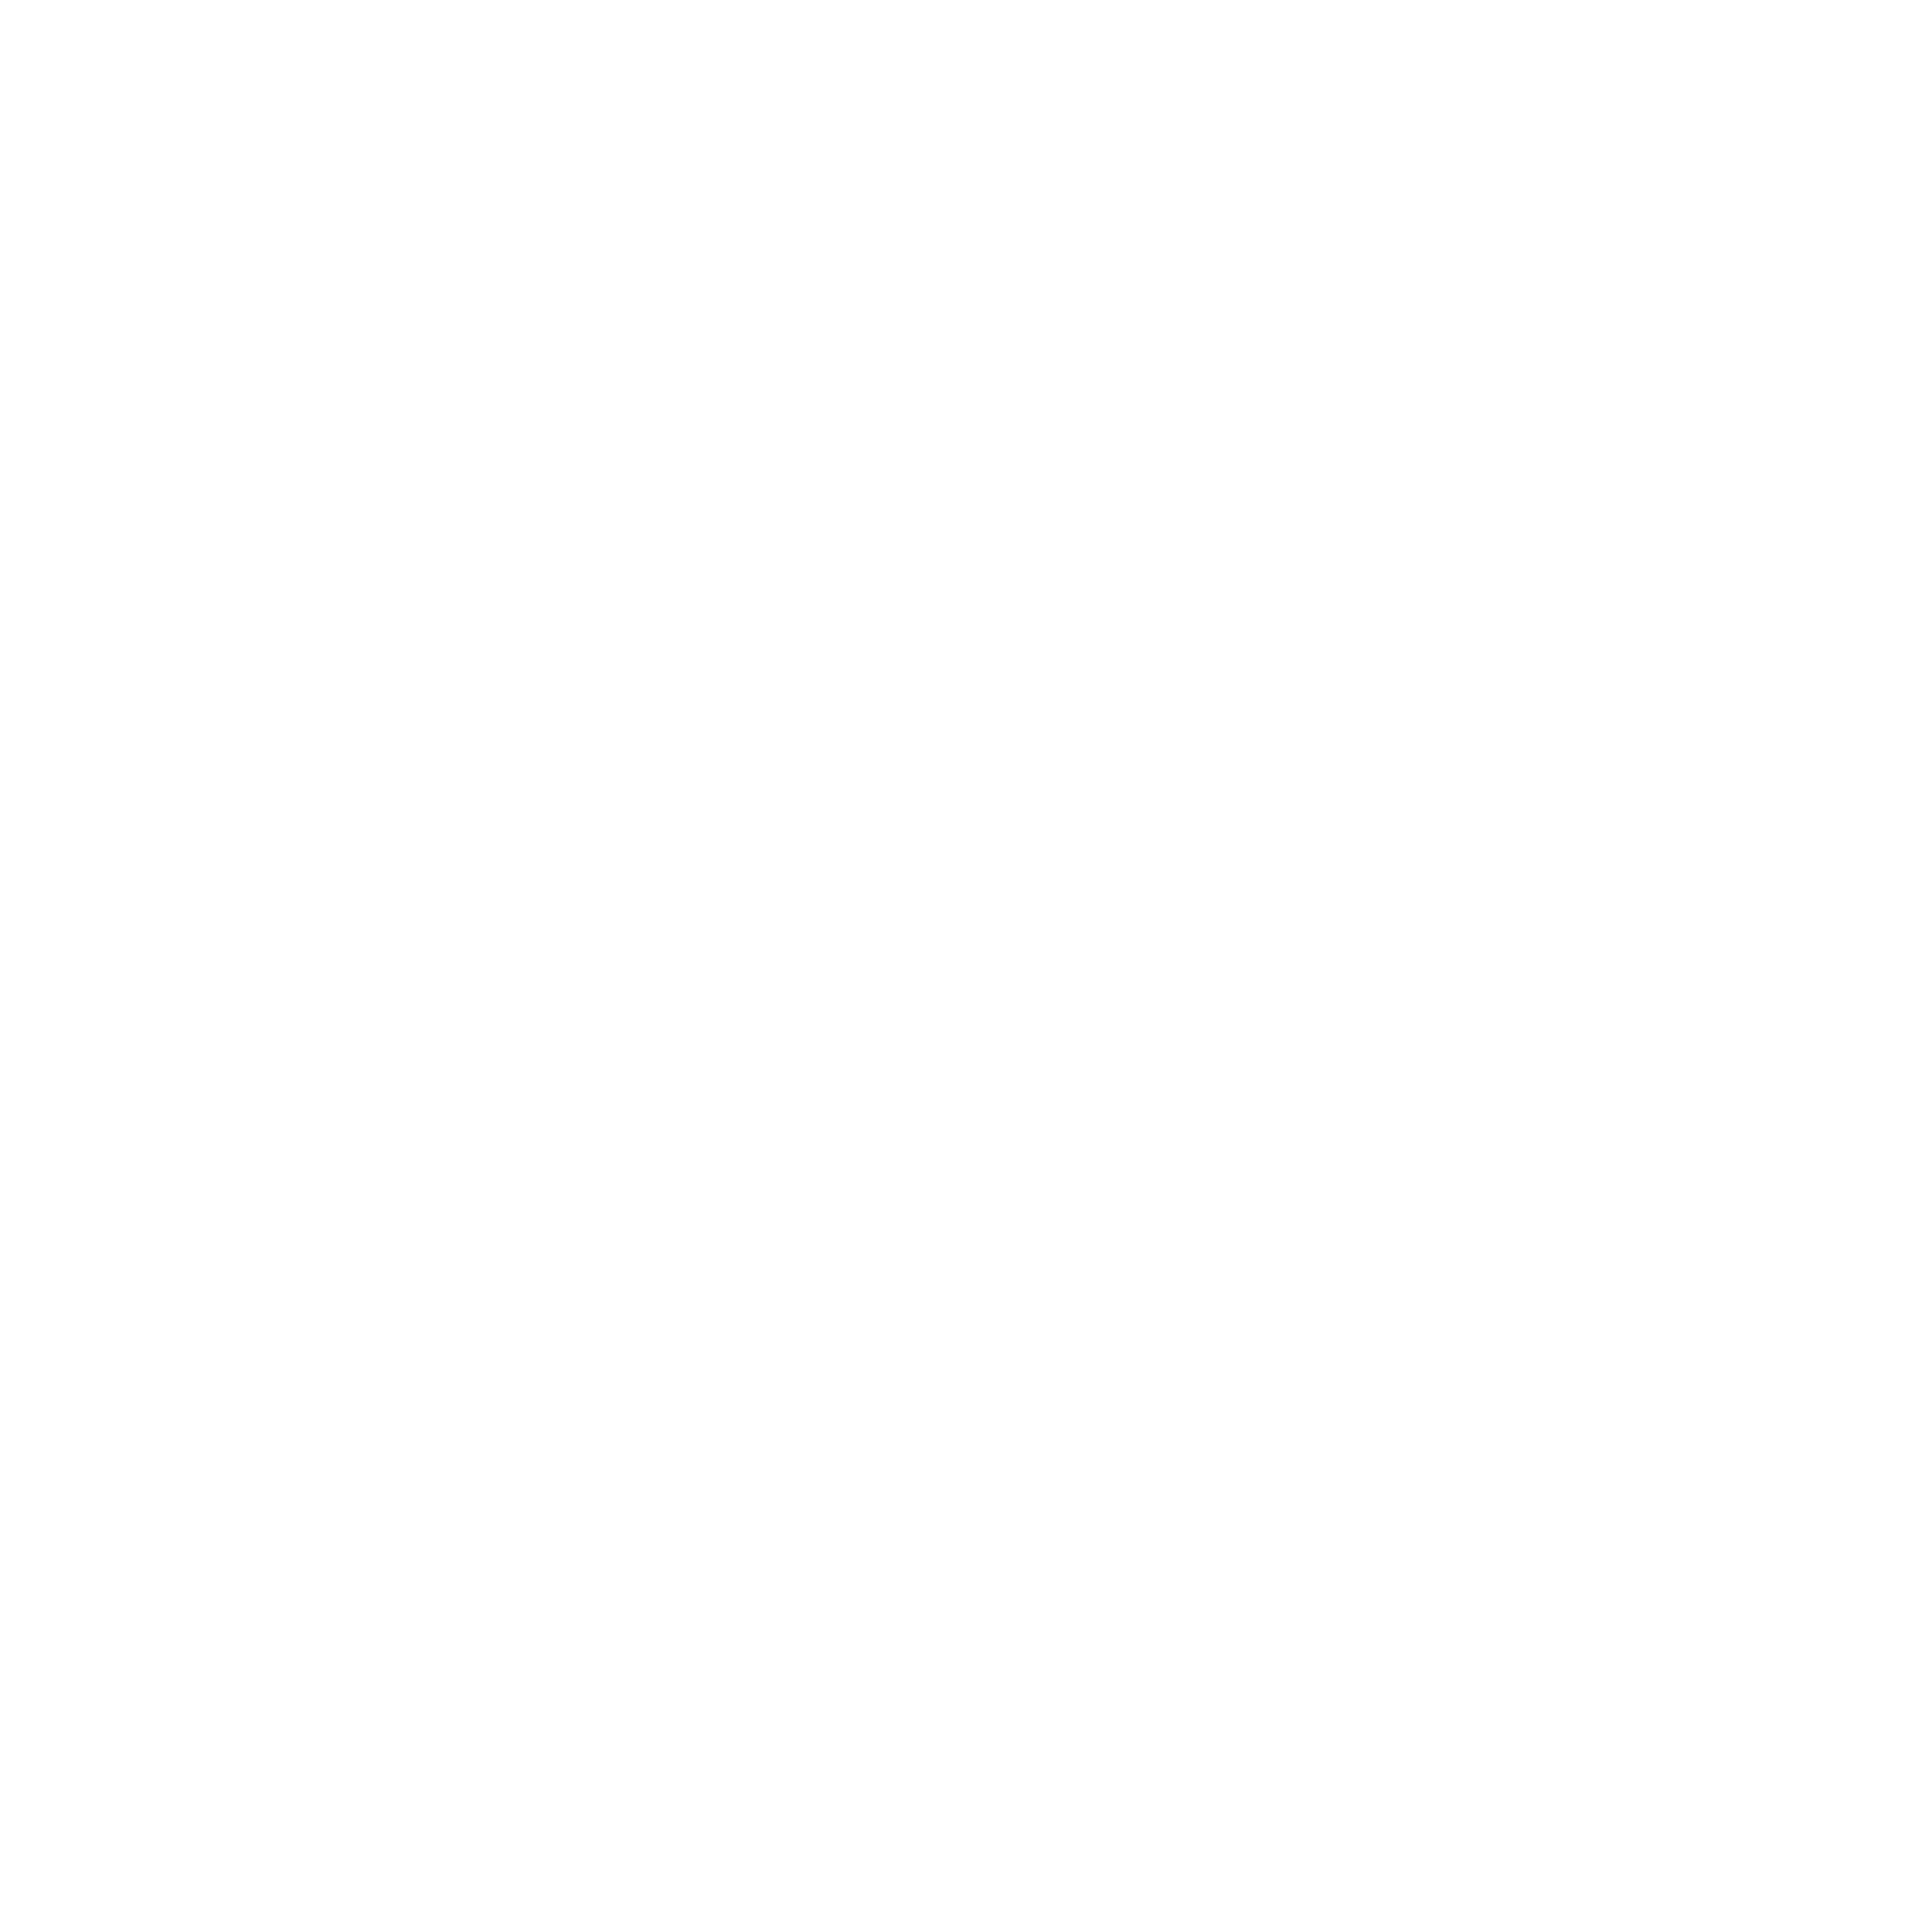 DD.DocumentGathering.png